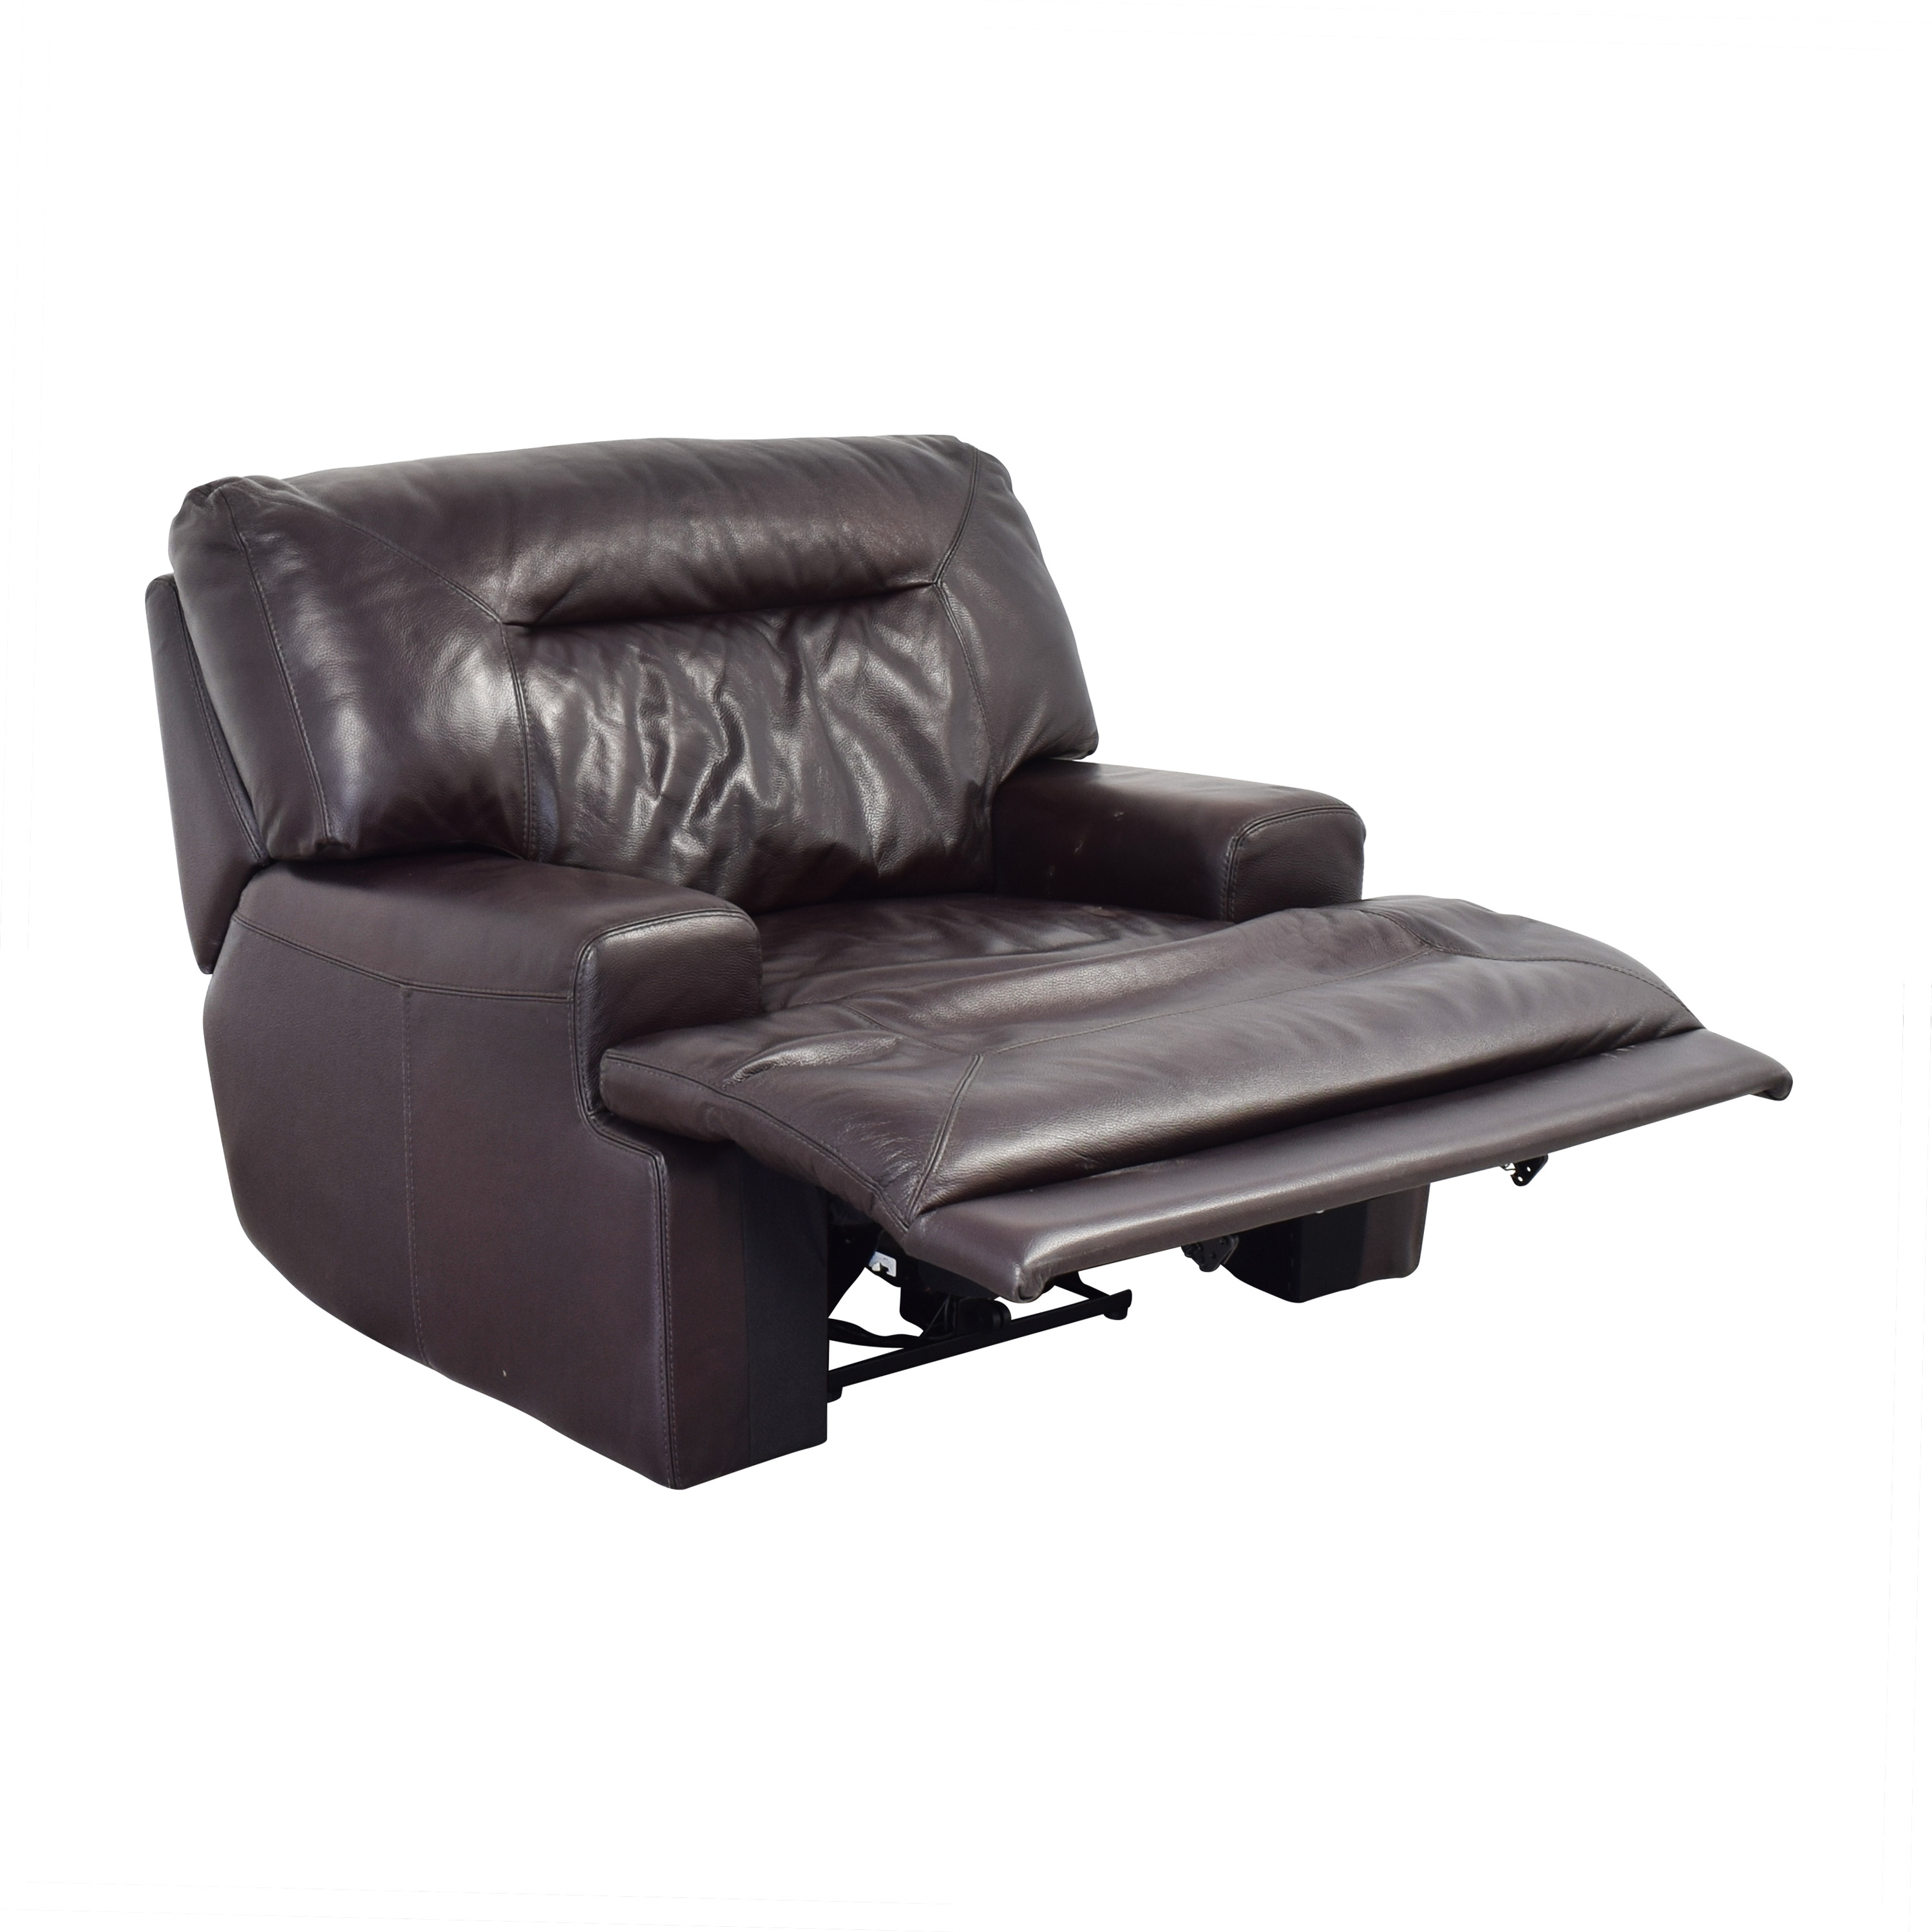 Macy's Macy's Recliner Accent Chair pa